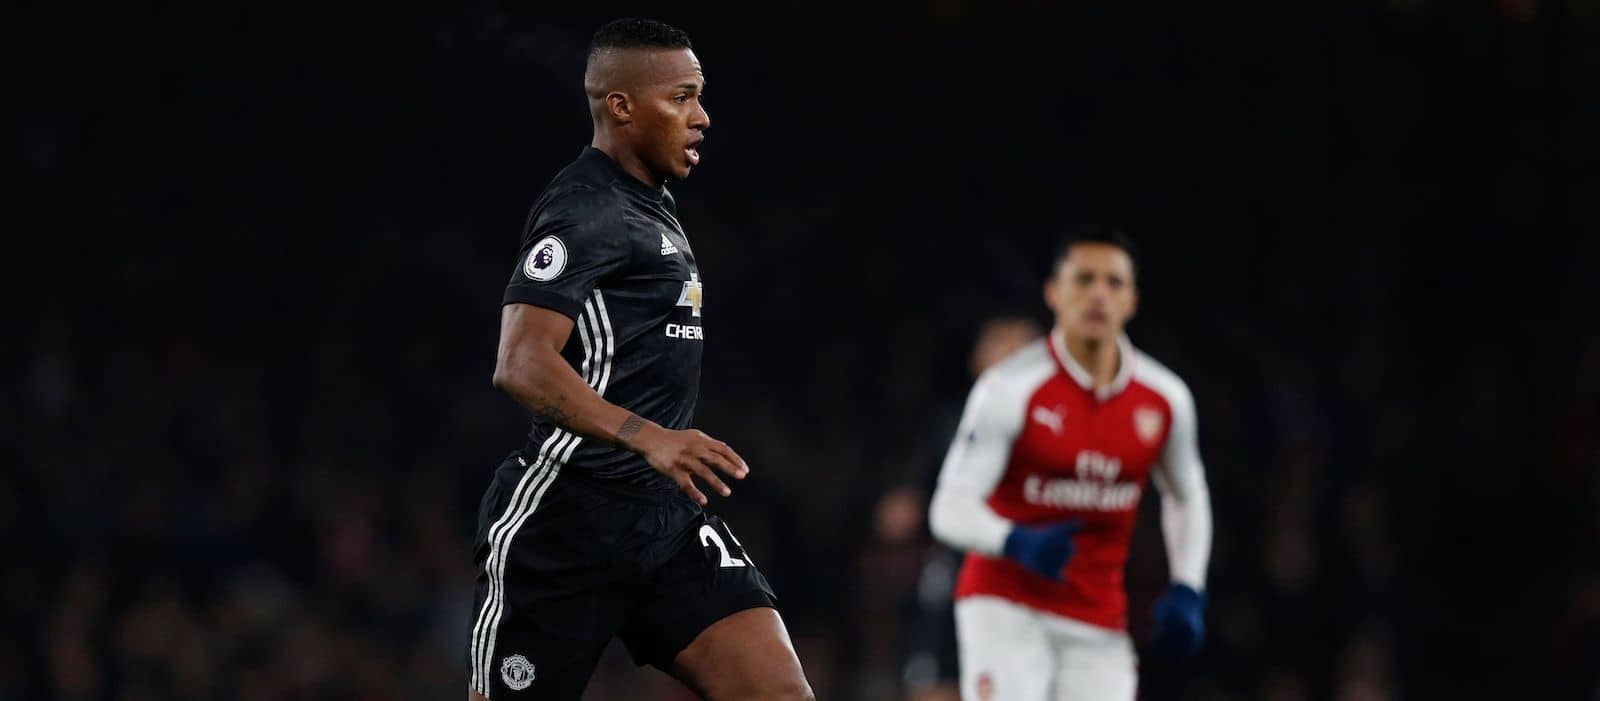 Ole Gunnar Solskjaer explains why Antonio Valencia hasn't played under him